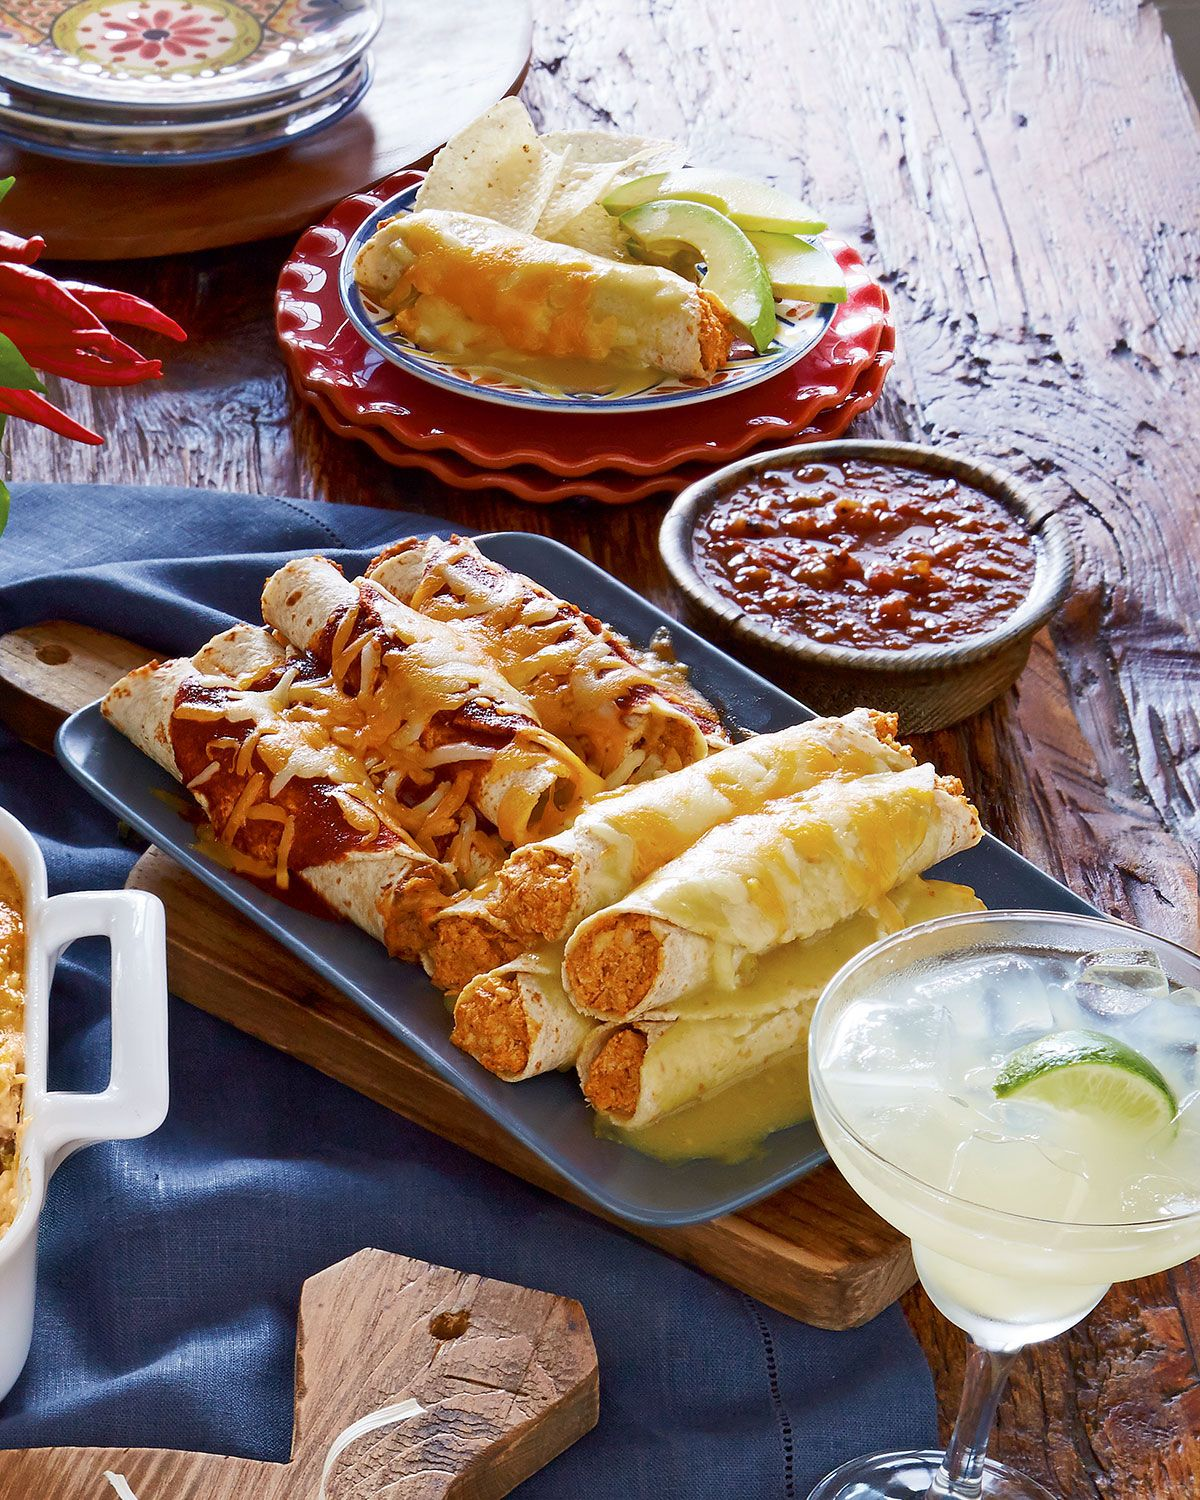 Healthy Recipes Cooking Tips: 12 Enchiladas For 4-6 People In 2019